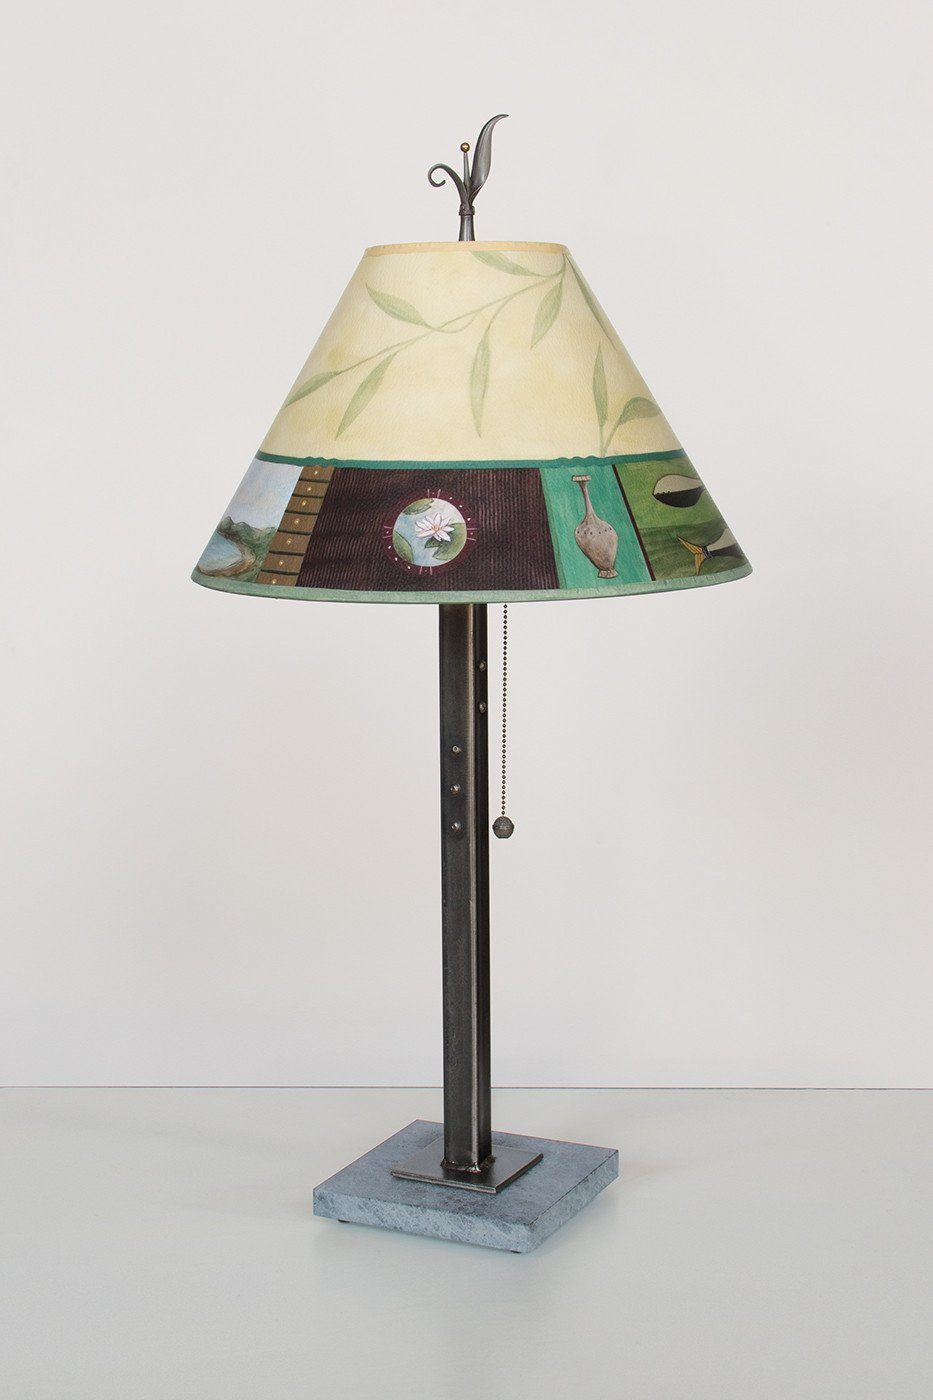 Steel Table Lamp on Marble with Medium Conical Shade in Twin Fish - Lit